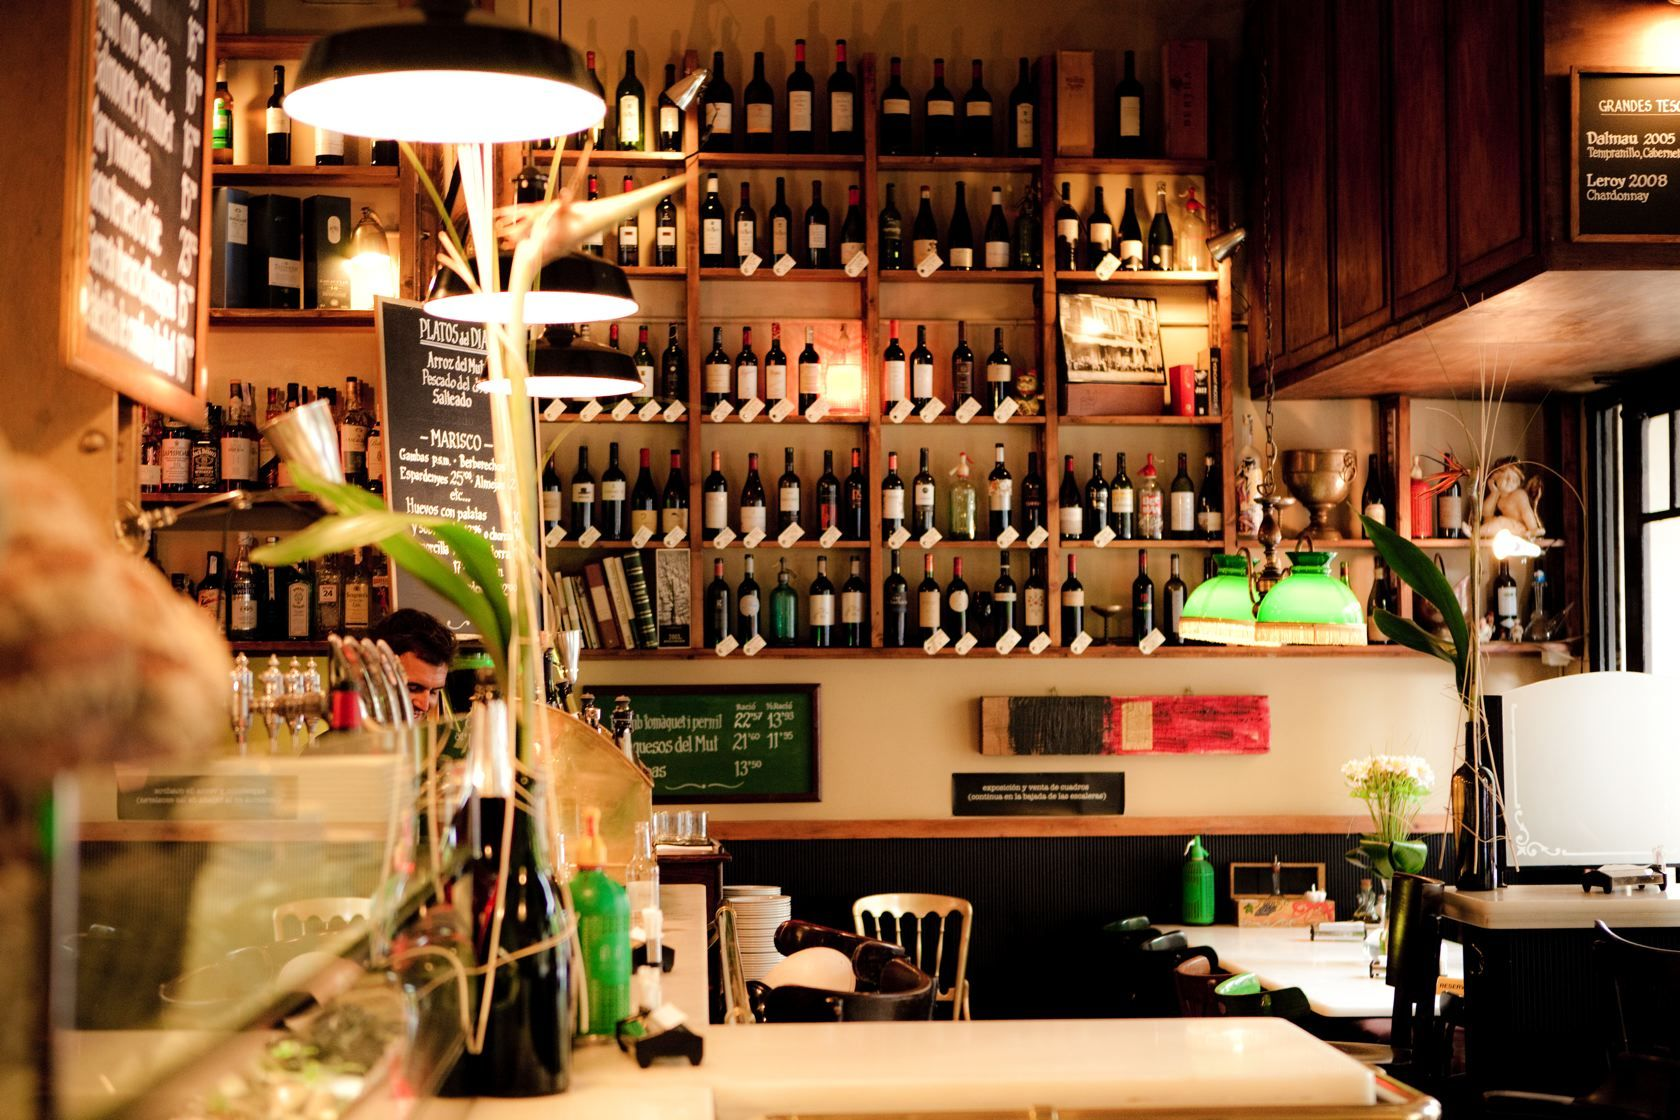 Bar Mut Barcelona. Our favorite place for tapas and cava in Barcelona.